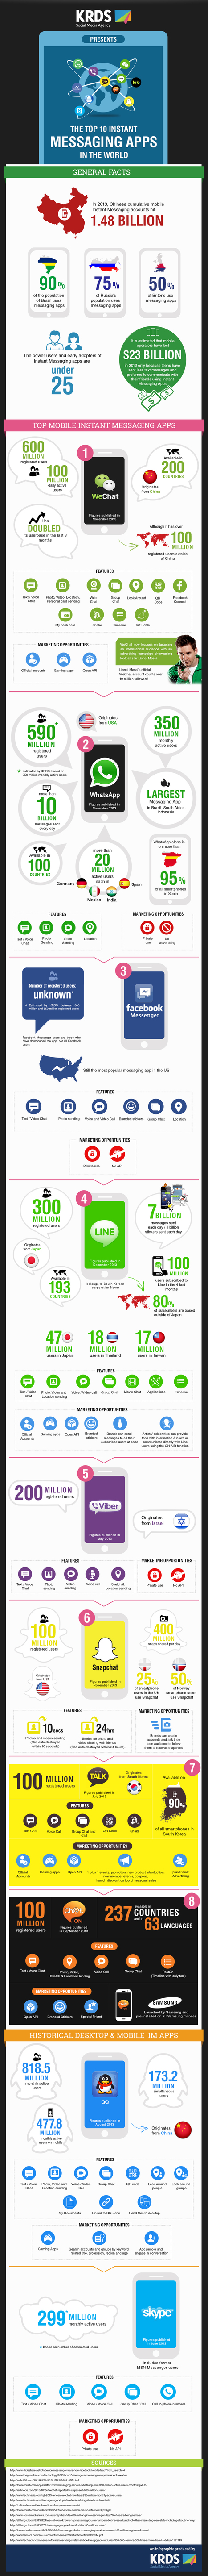 Infographic: the Top 10 Instant Messaging Apps in the world, by KRDS | Education & Numérique | Scoop.it